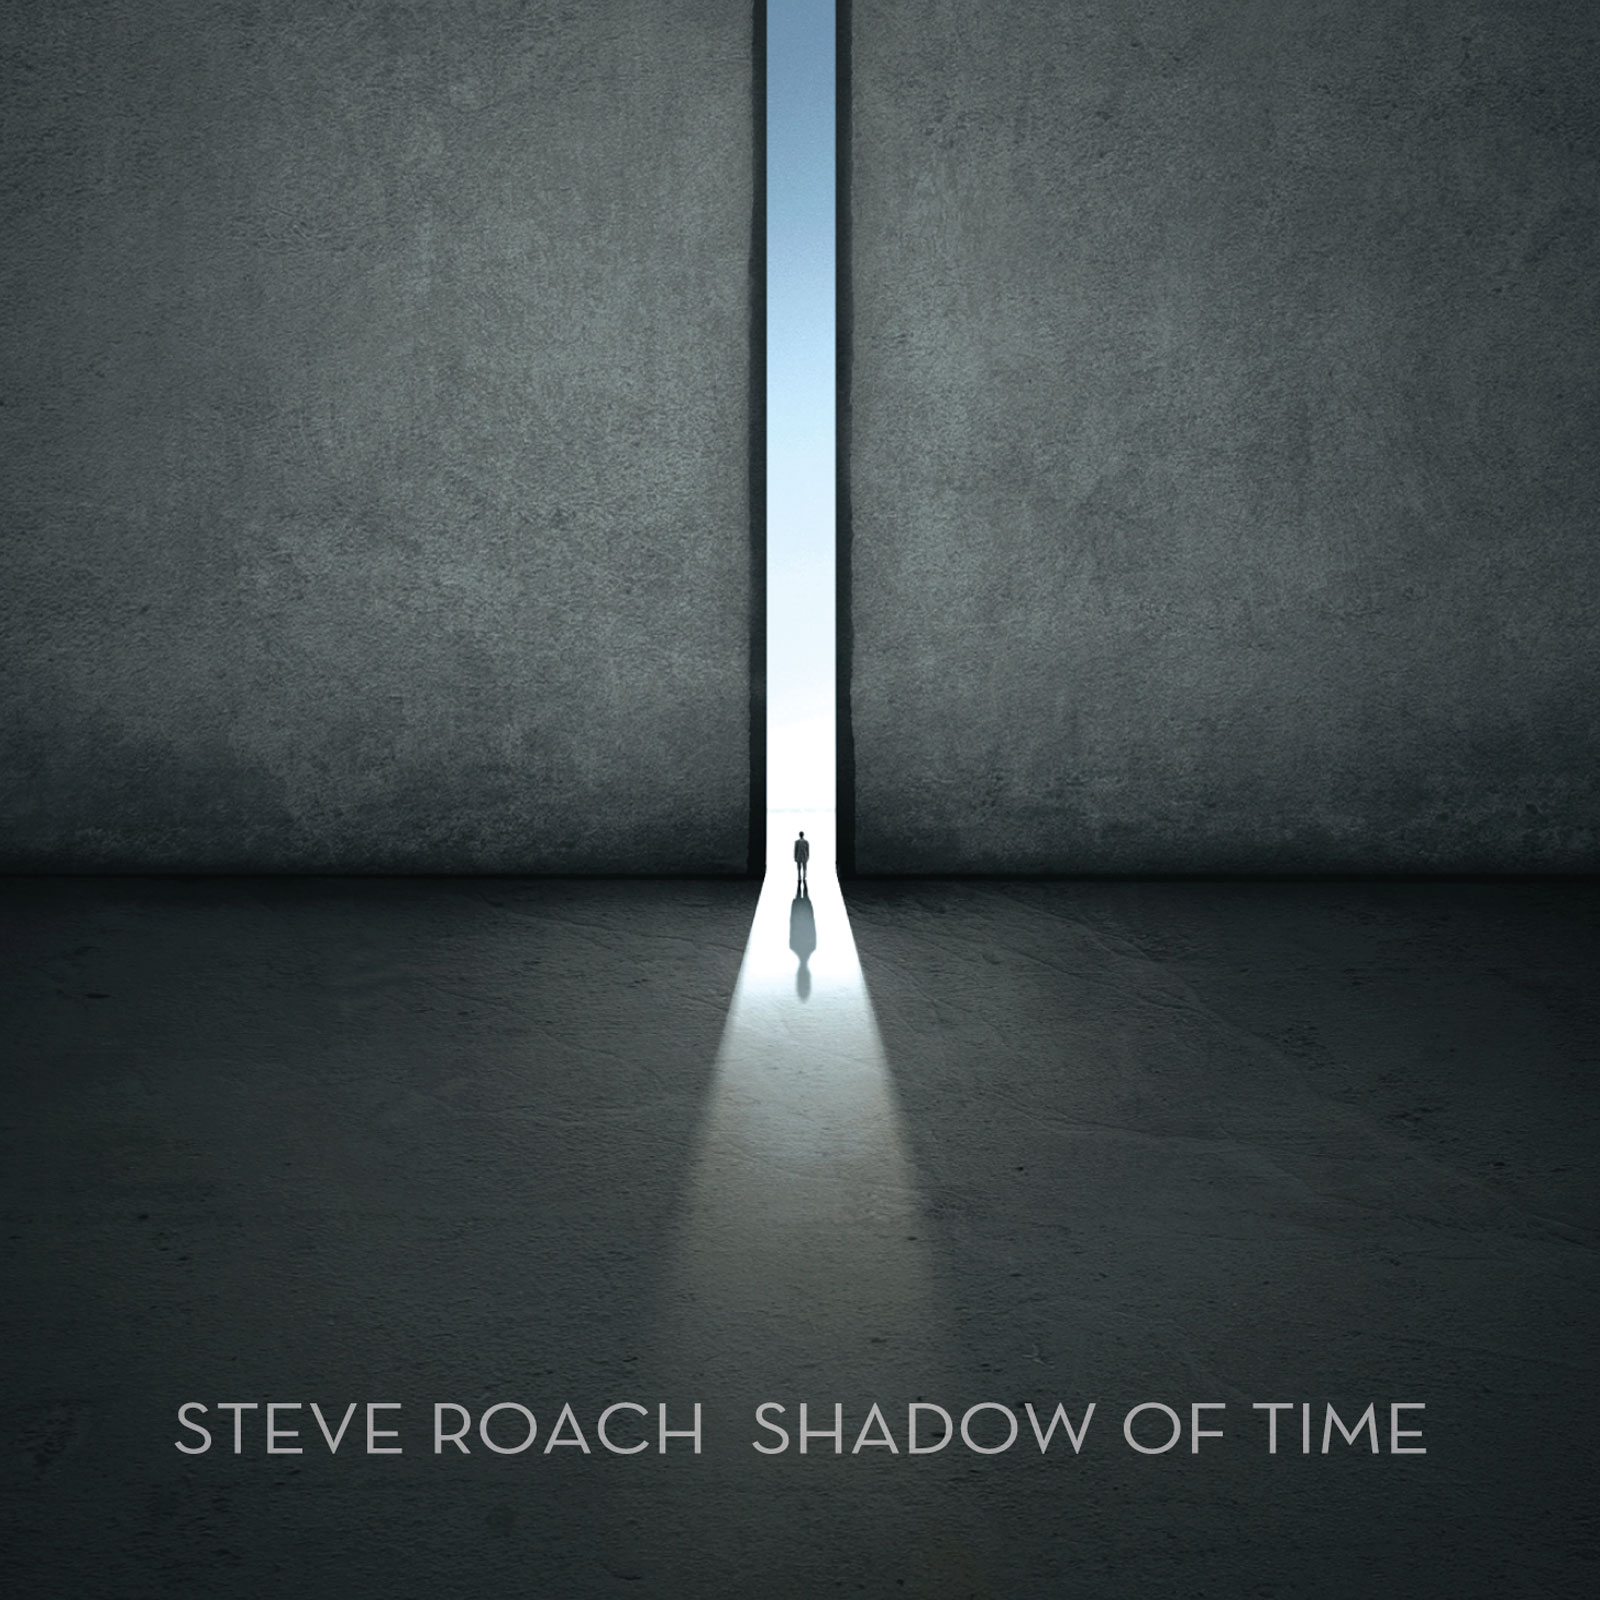 Steve Roach — Shadow of Time